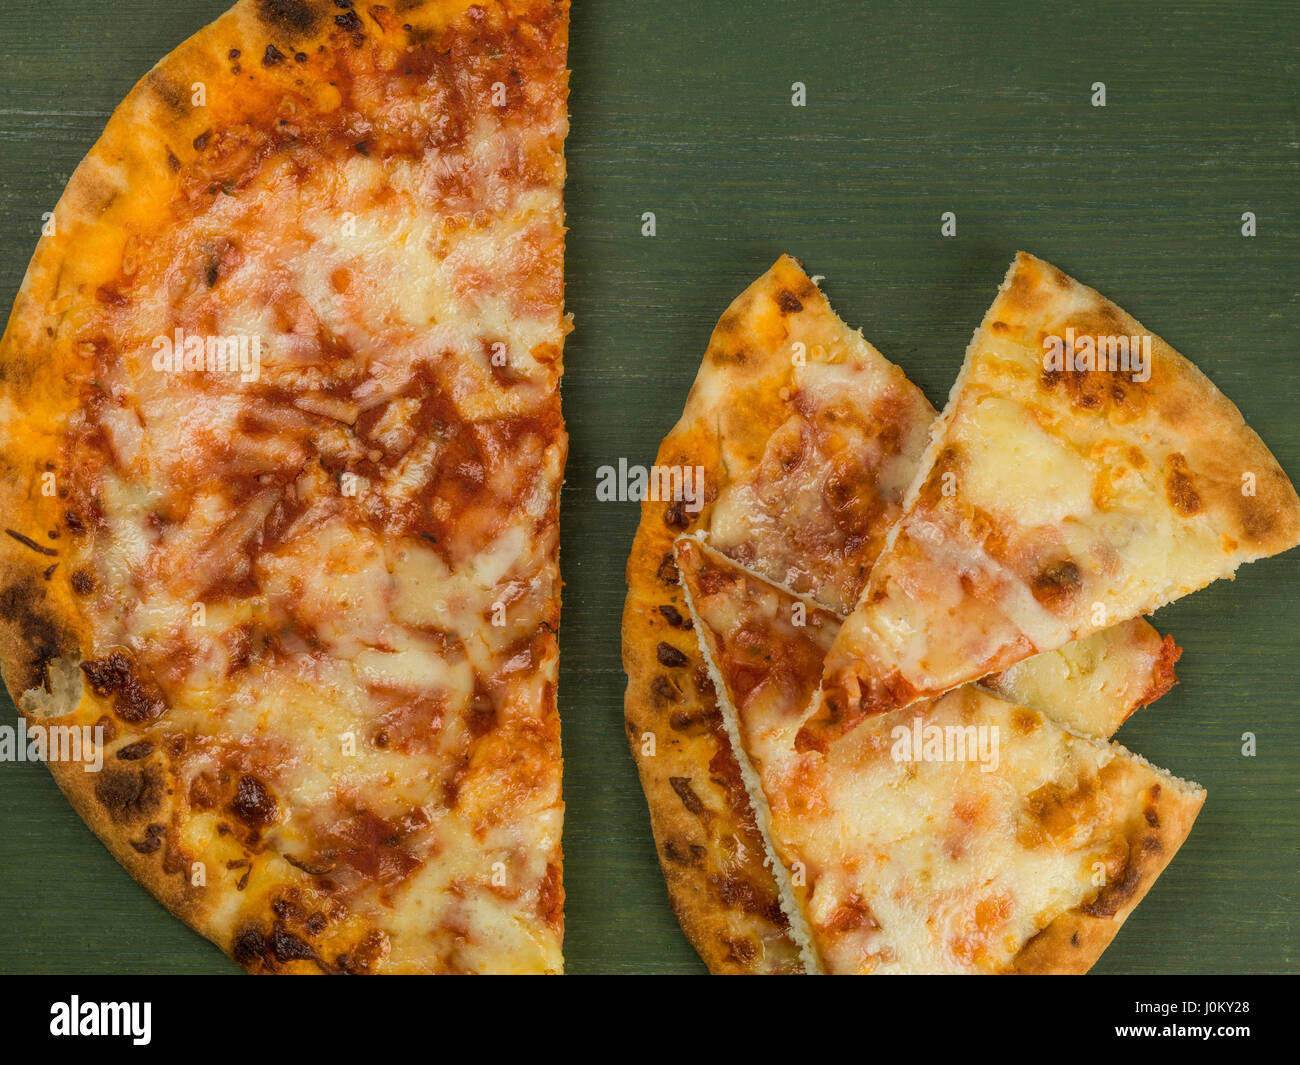 Cheese and Tomato Margherita Pizza Against a Green Background - Stock Image